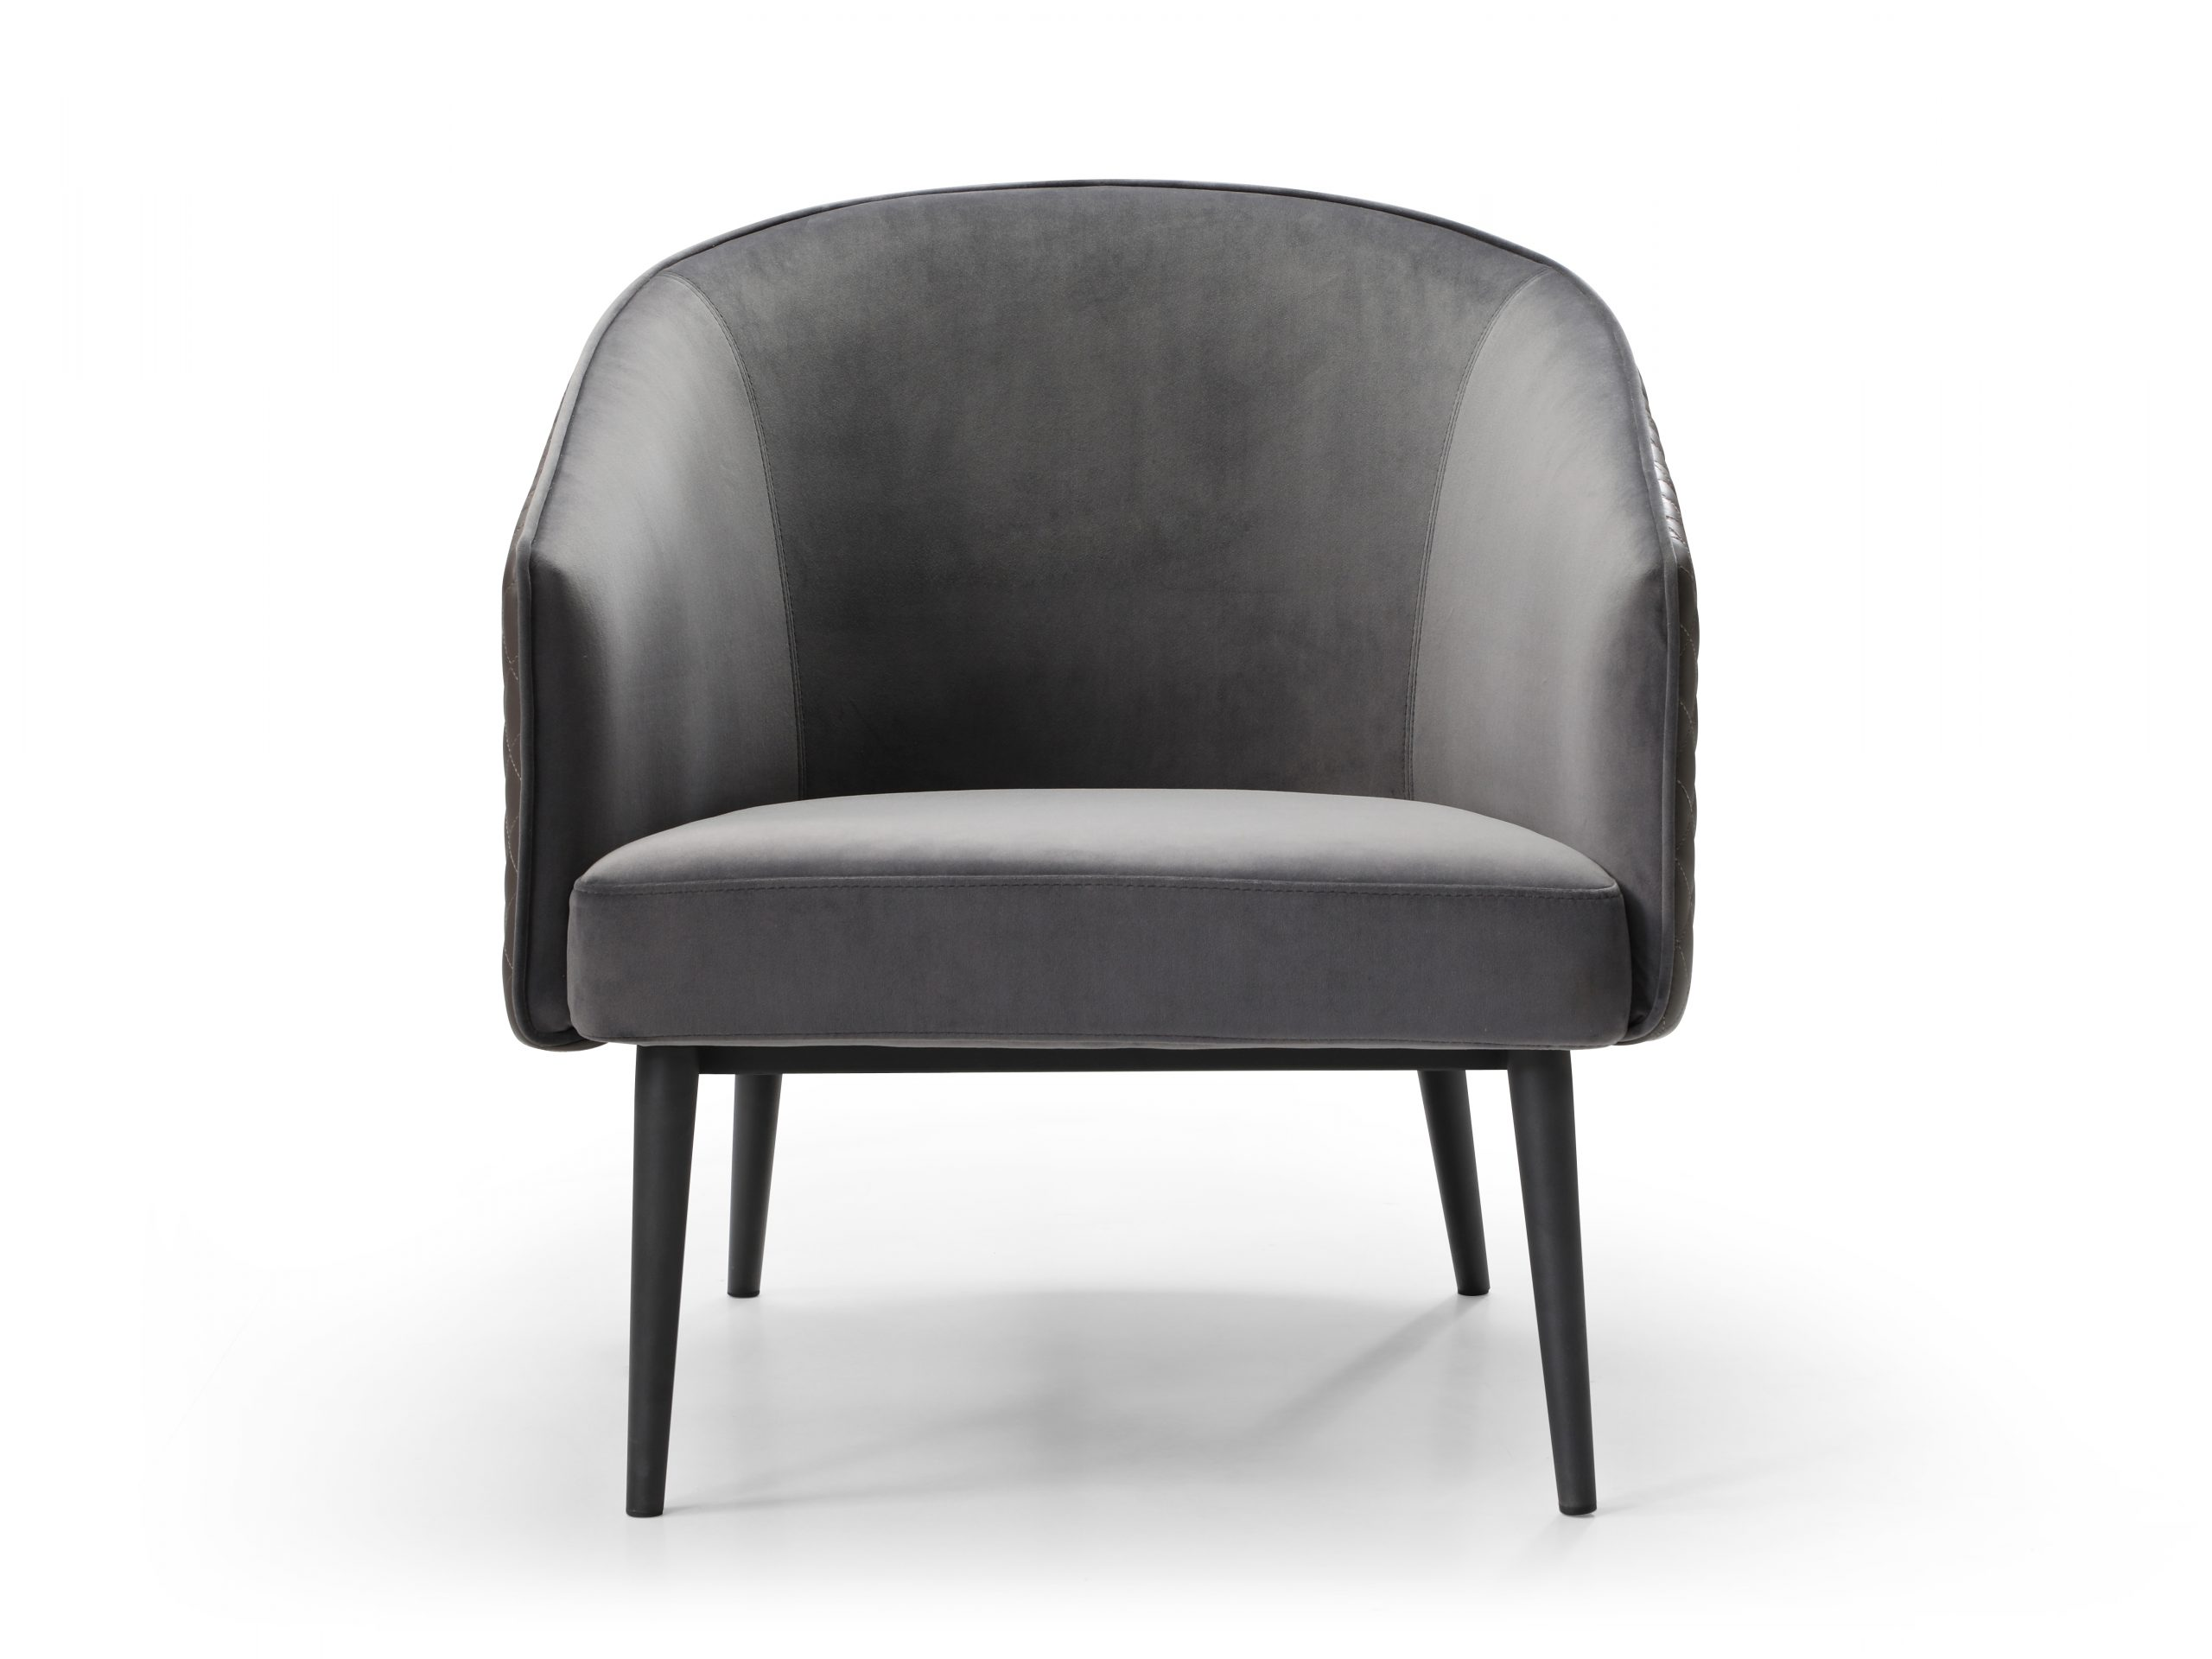 Boston Leisure Chair is available in great velvet fabric. The front, back, and seat are grey velvet fabric and the outside back is grey PU. It makes a great combination with the sanded black coated steel frame base.